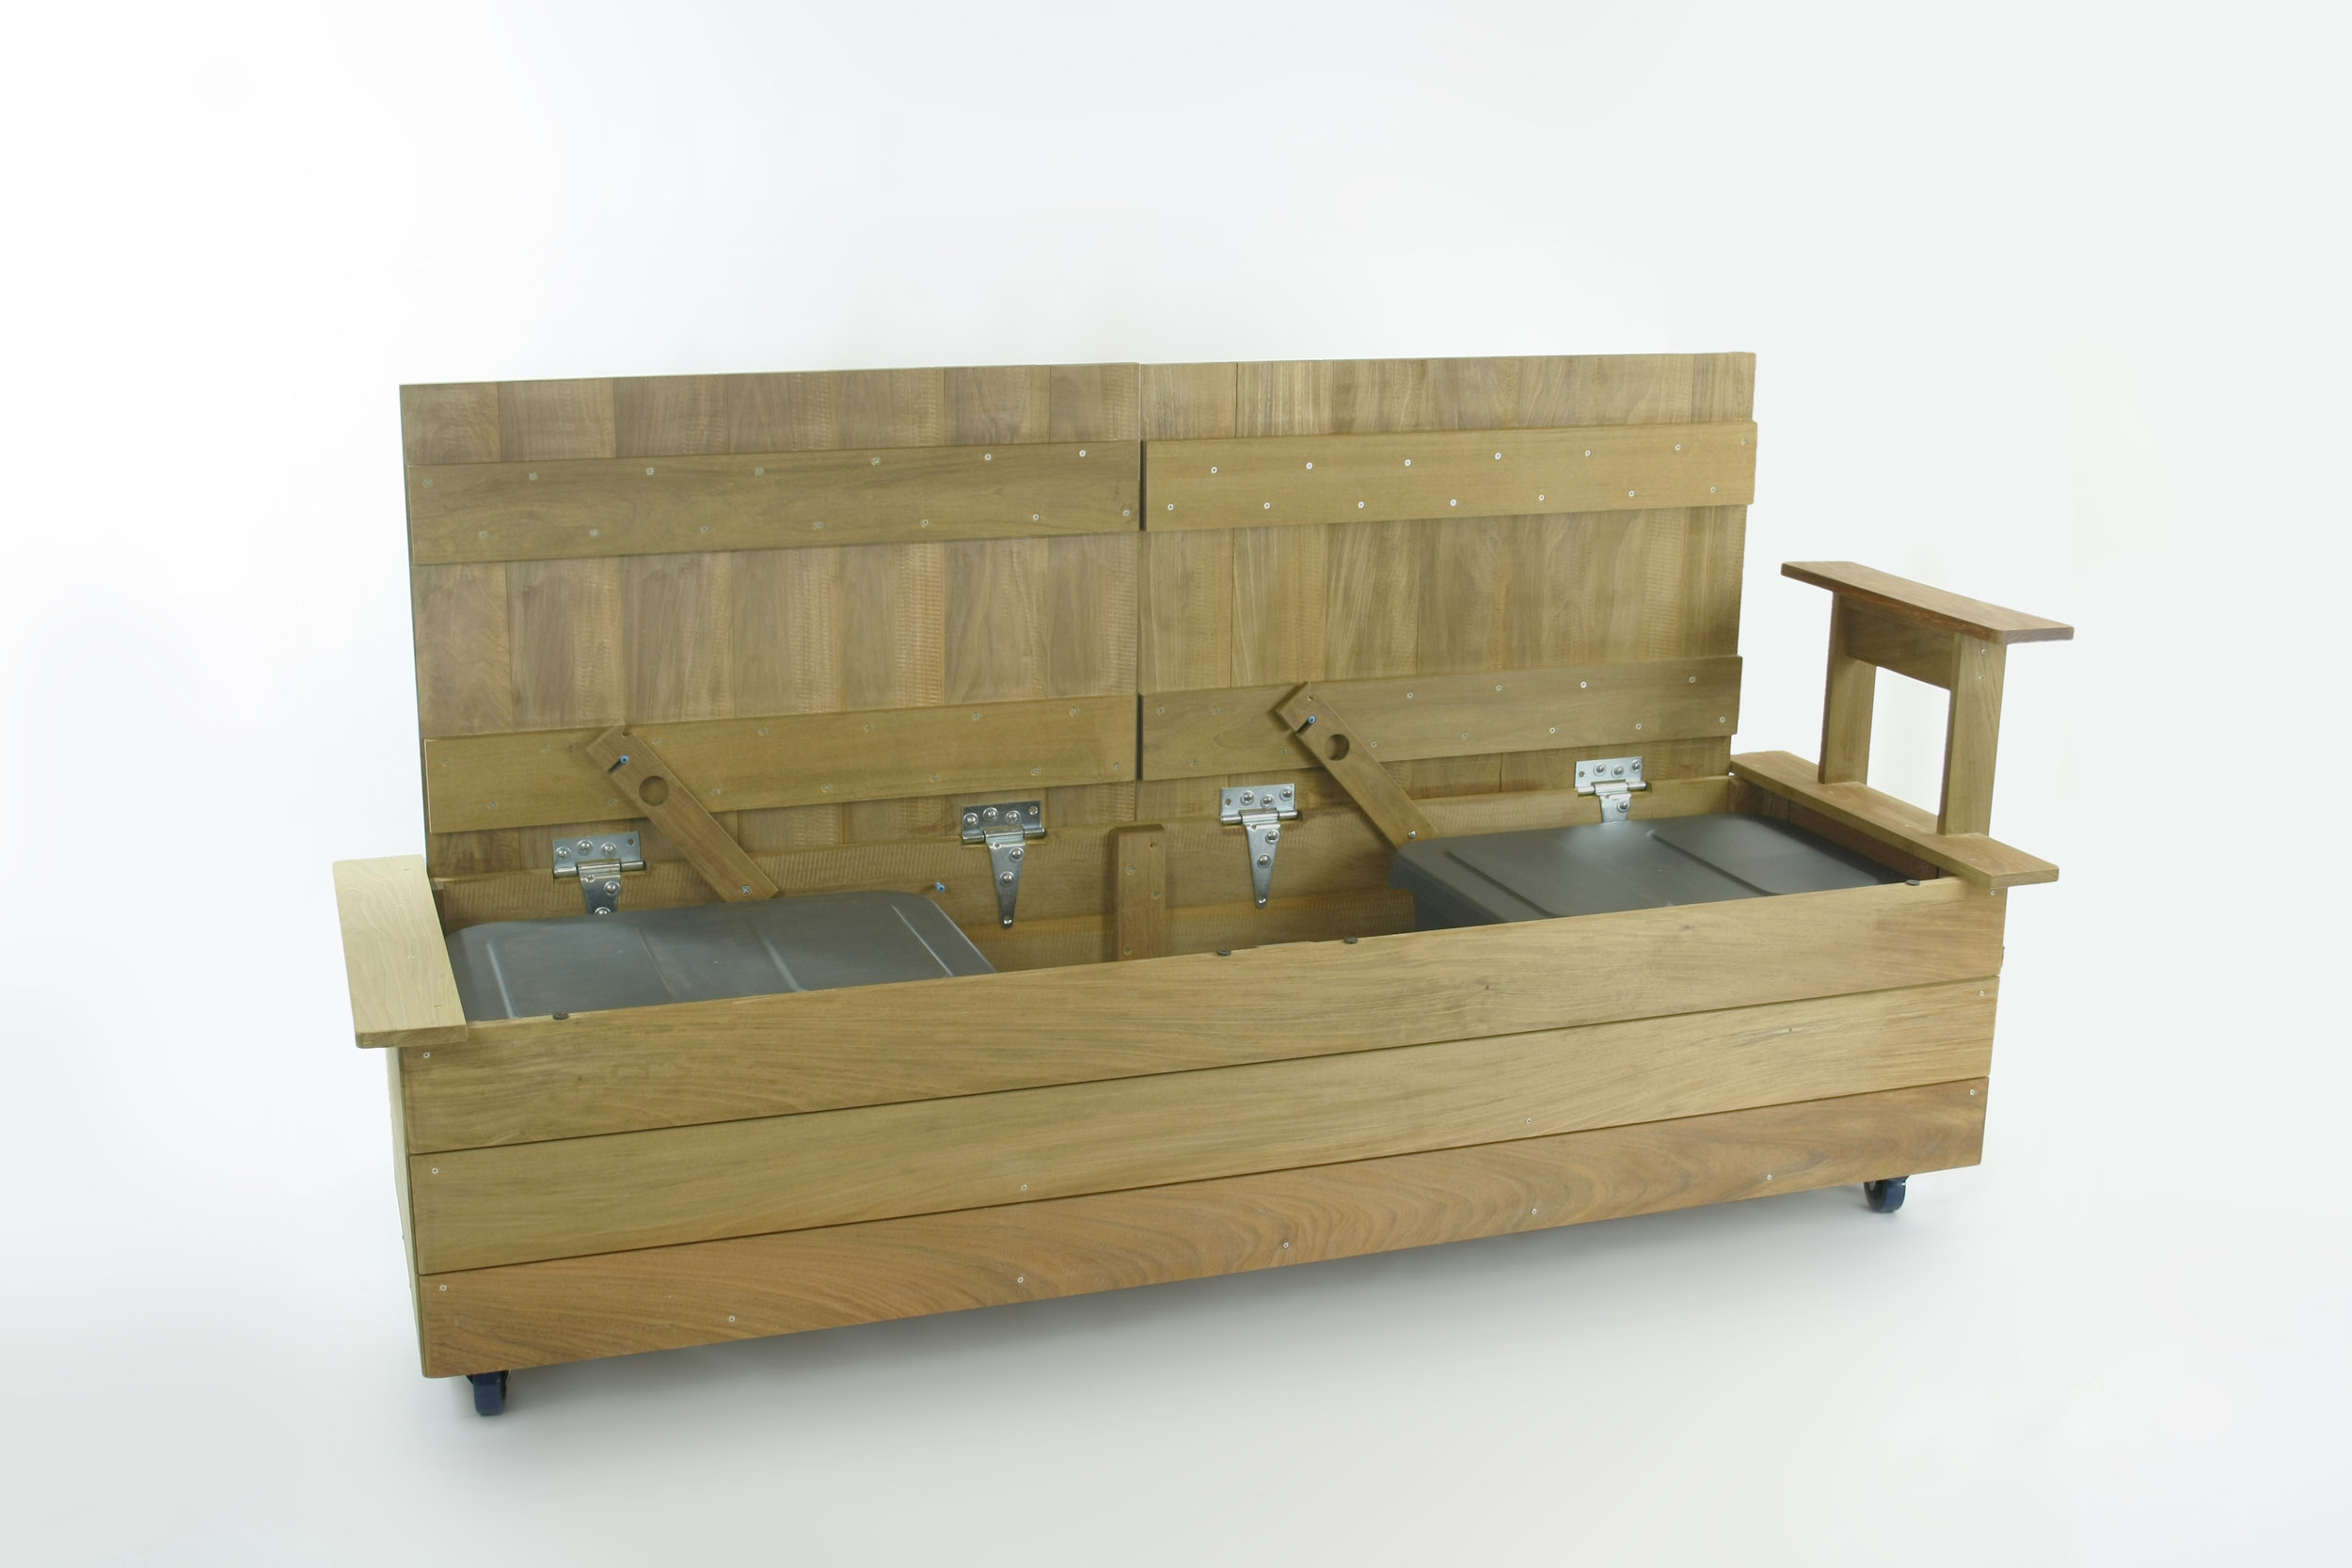 norden-at-home-custom-furniture-recycling-bench-1.jpg